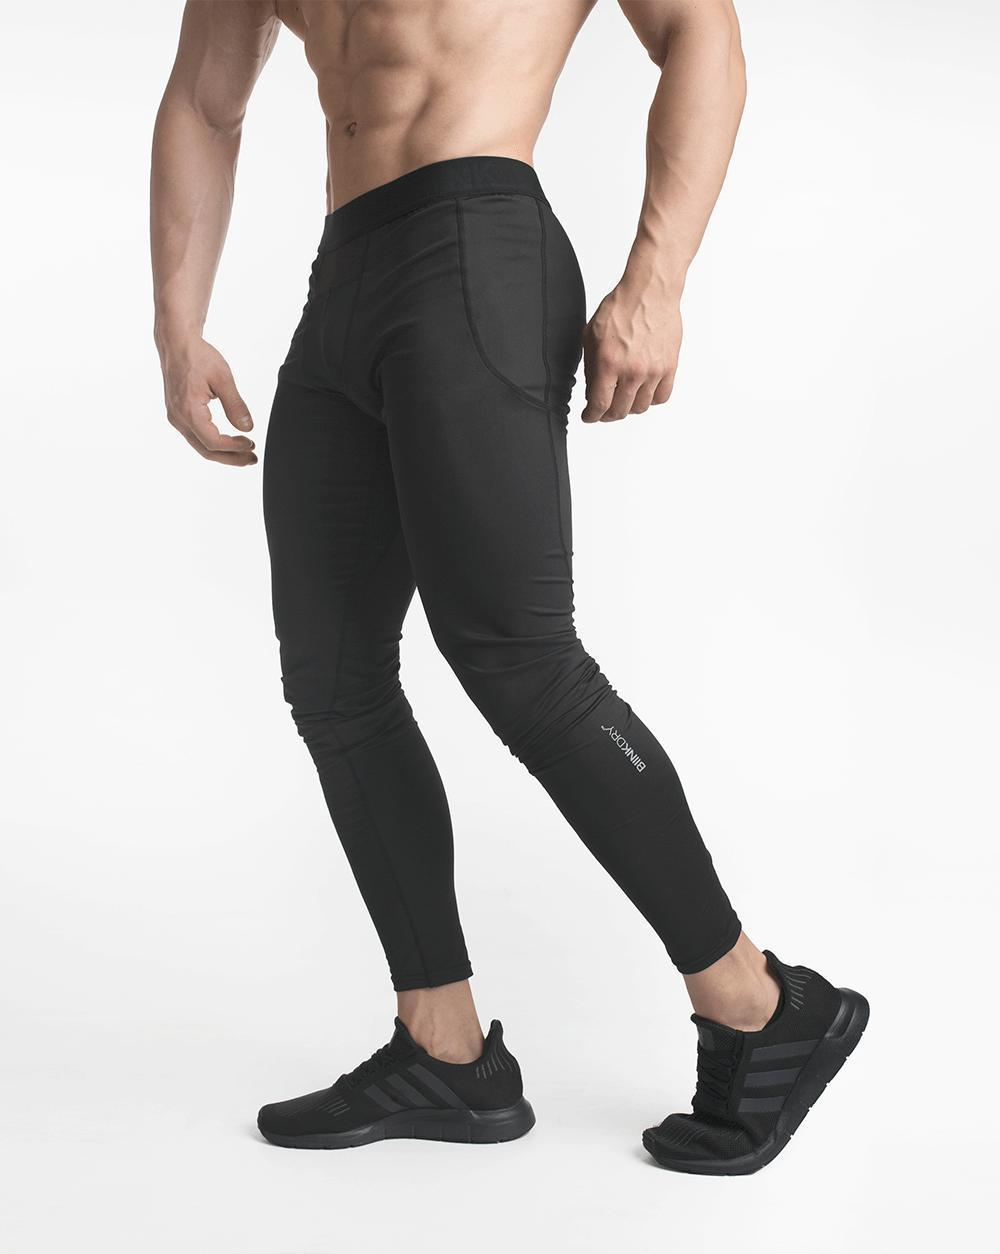 Biink DRY Training Tights - Stealth Black